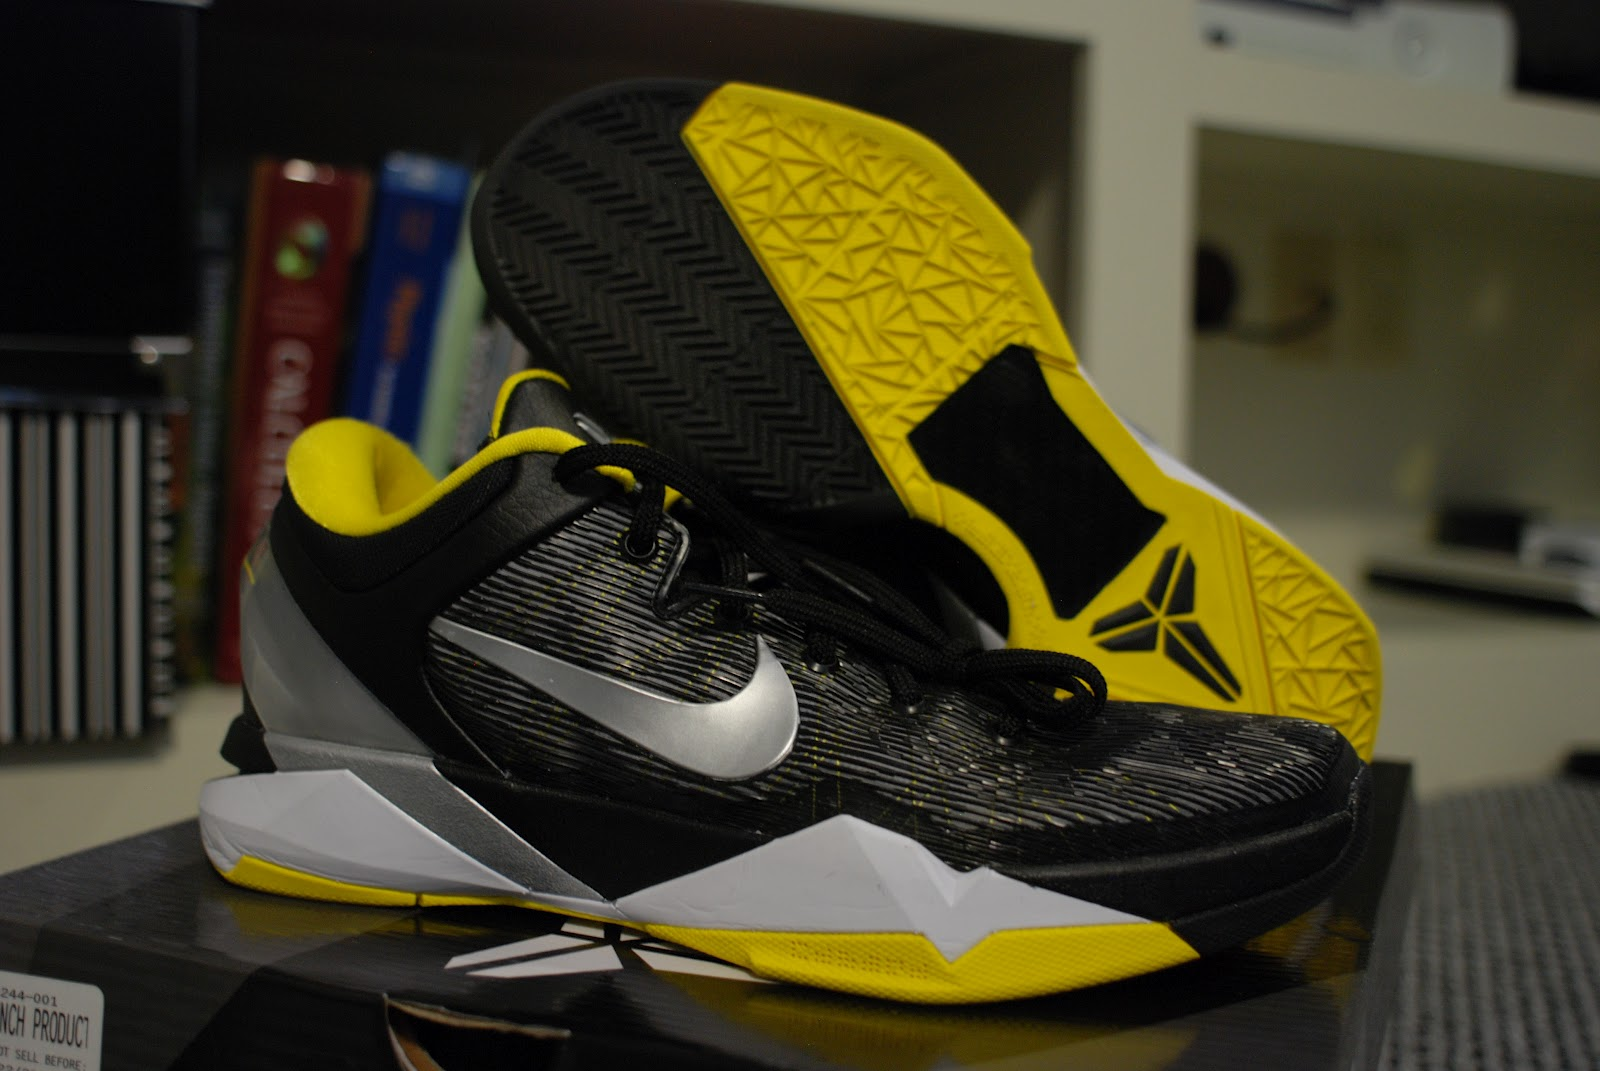 promo code 94594 04d9f The Nike Kobe VII System comes with one (1) pair of New Nike Zoom Kobe VII  Review ...